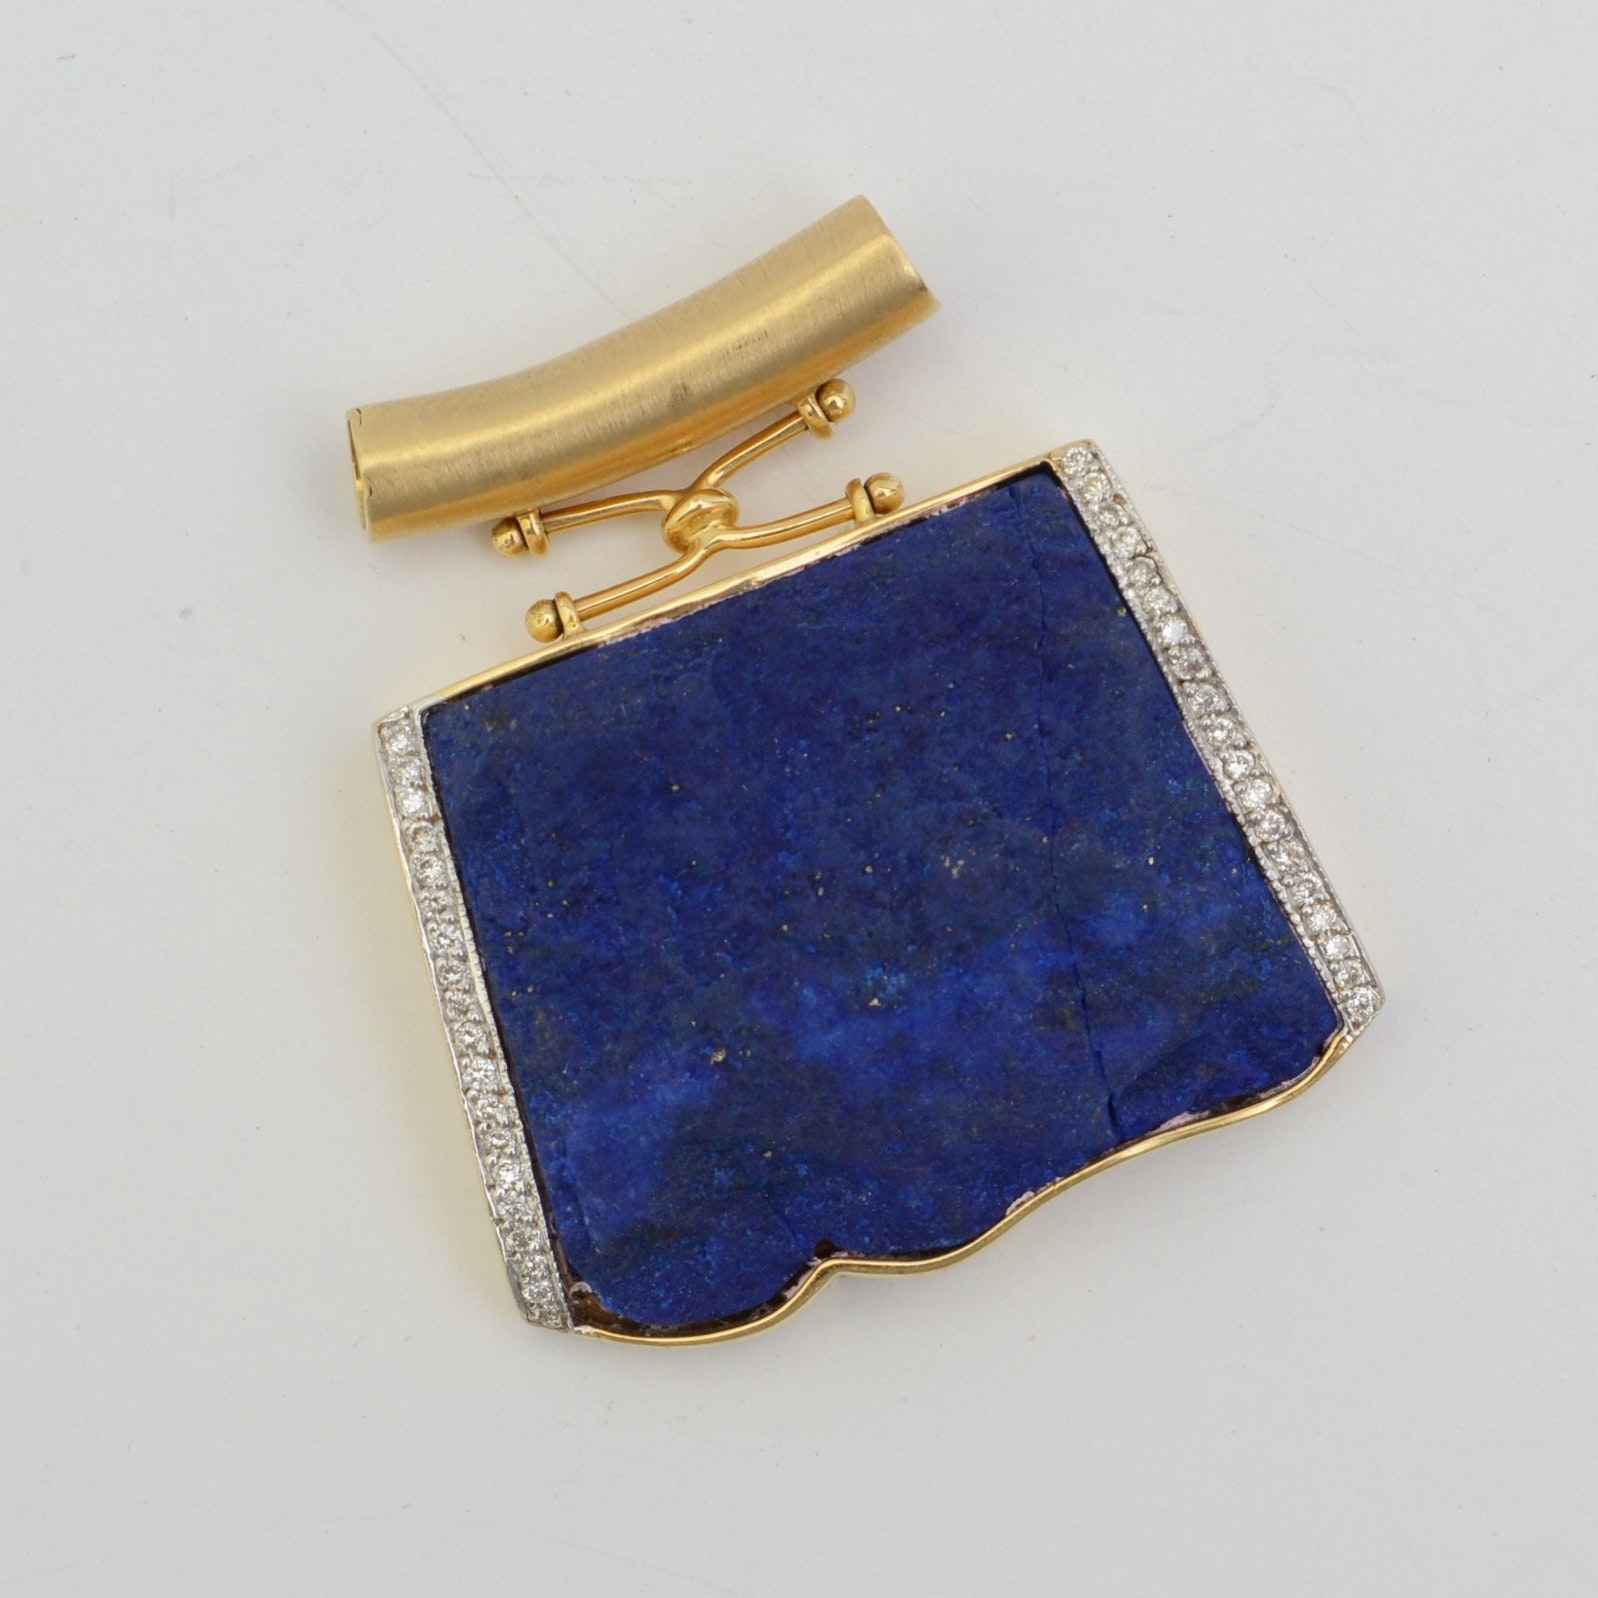 18K Diamond and Lapis Pendant